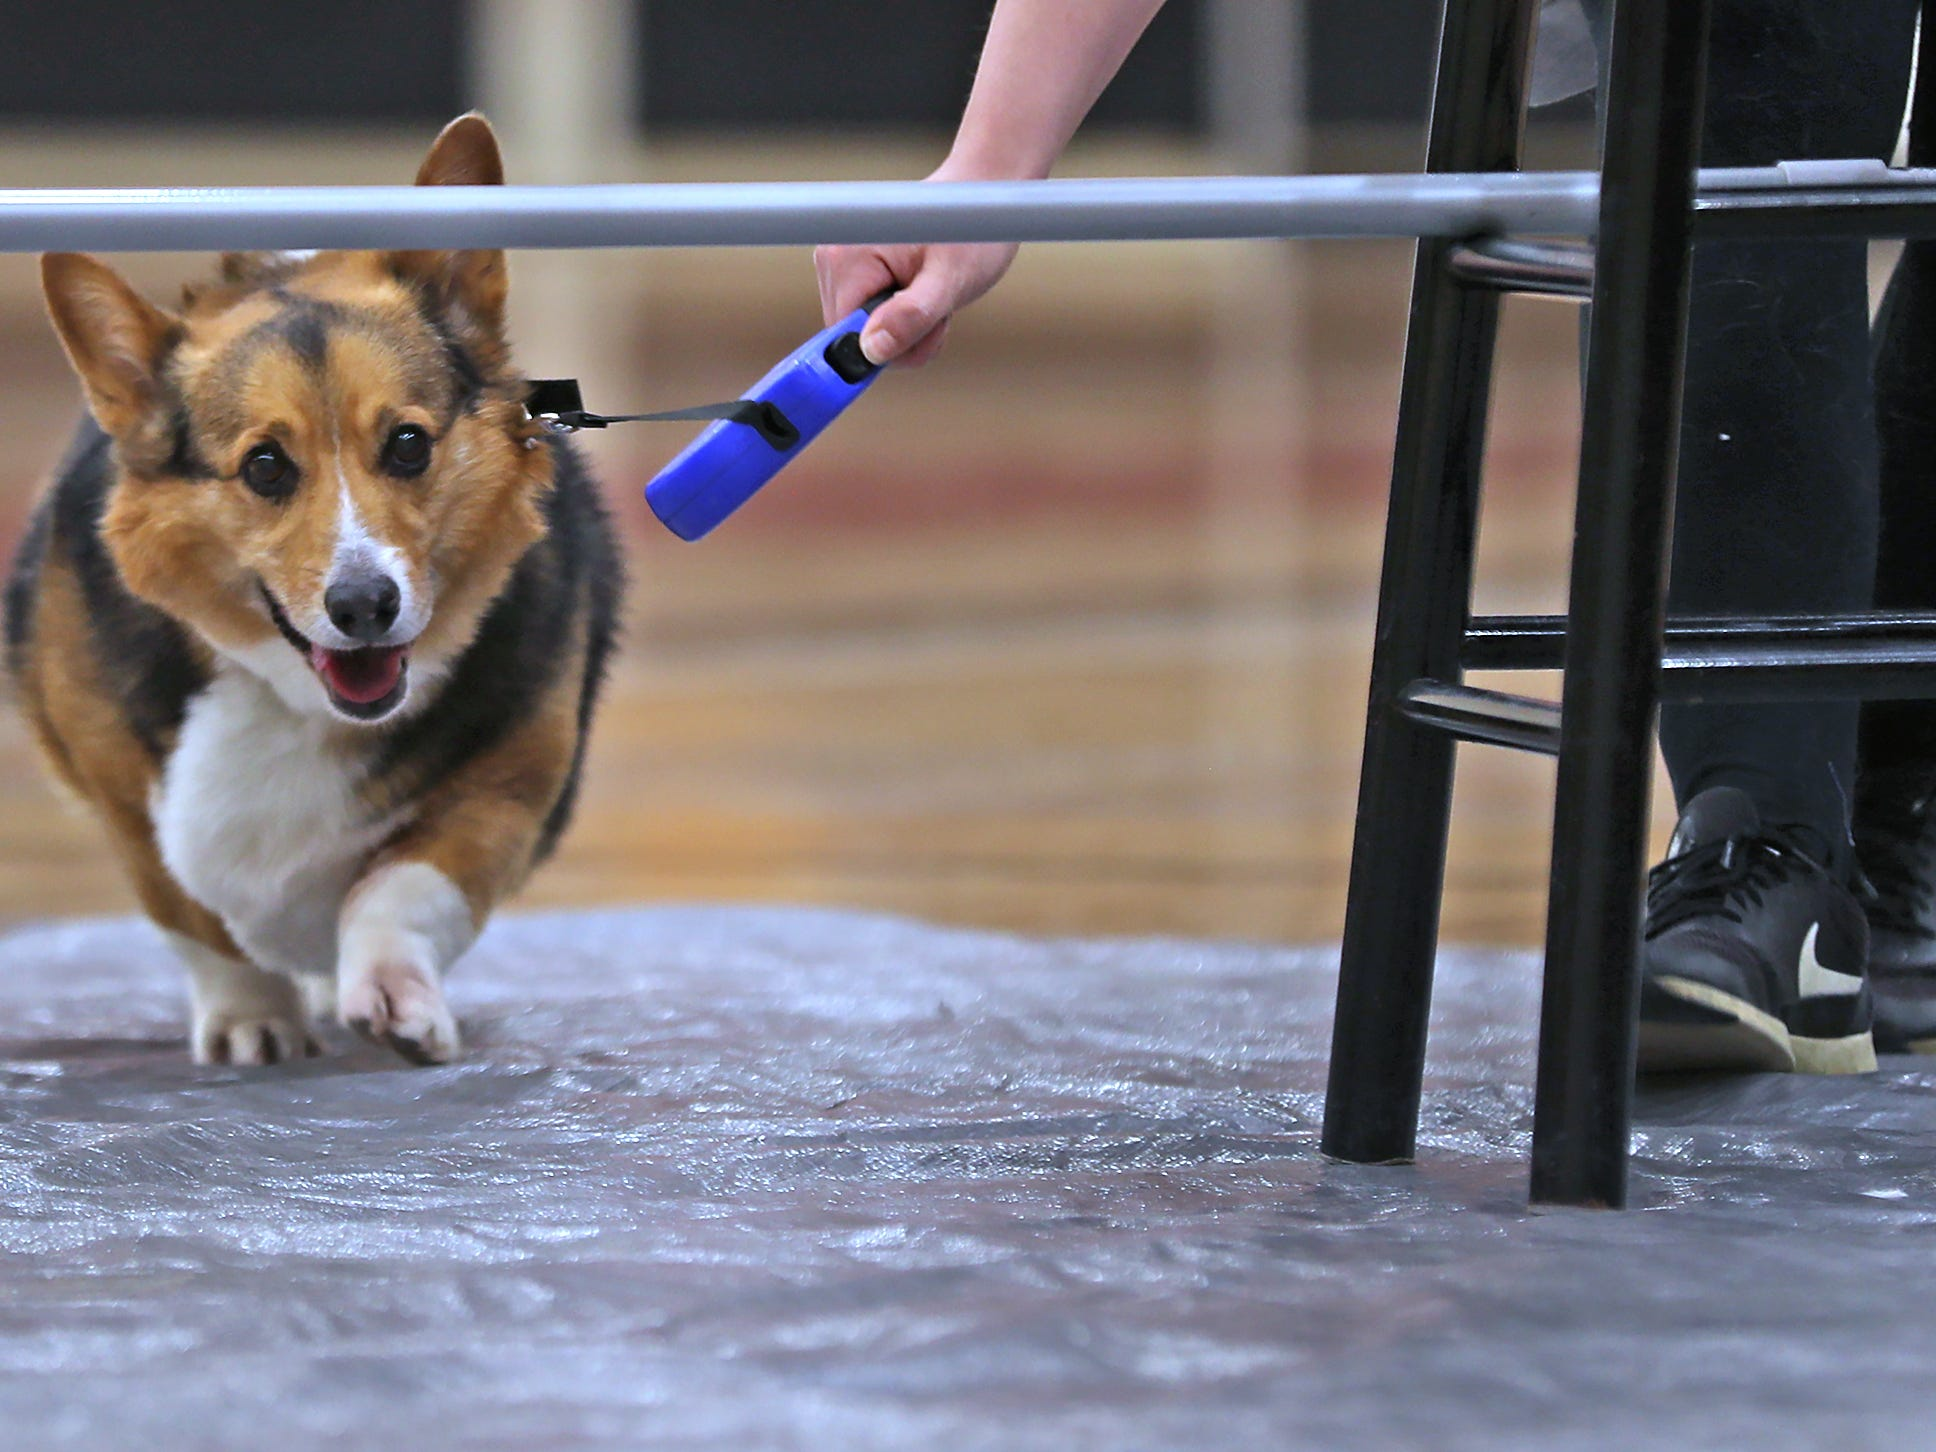 Maverick goes for the limbo bar at the Indianapolis Corgi Limbo & Costume Contest at IUPUI, Sunday, April 14, 2019.  @mavythecorg is his instagram.  The event benefits children orphaned by HIV/AIDS in eSwatini, Africa.  It is presented by the Give Hope, Fight Poverty IUPUI chapter.